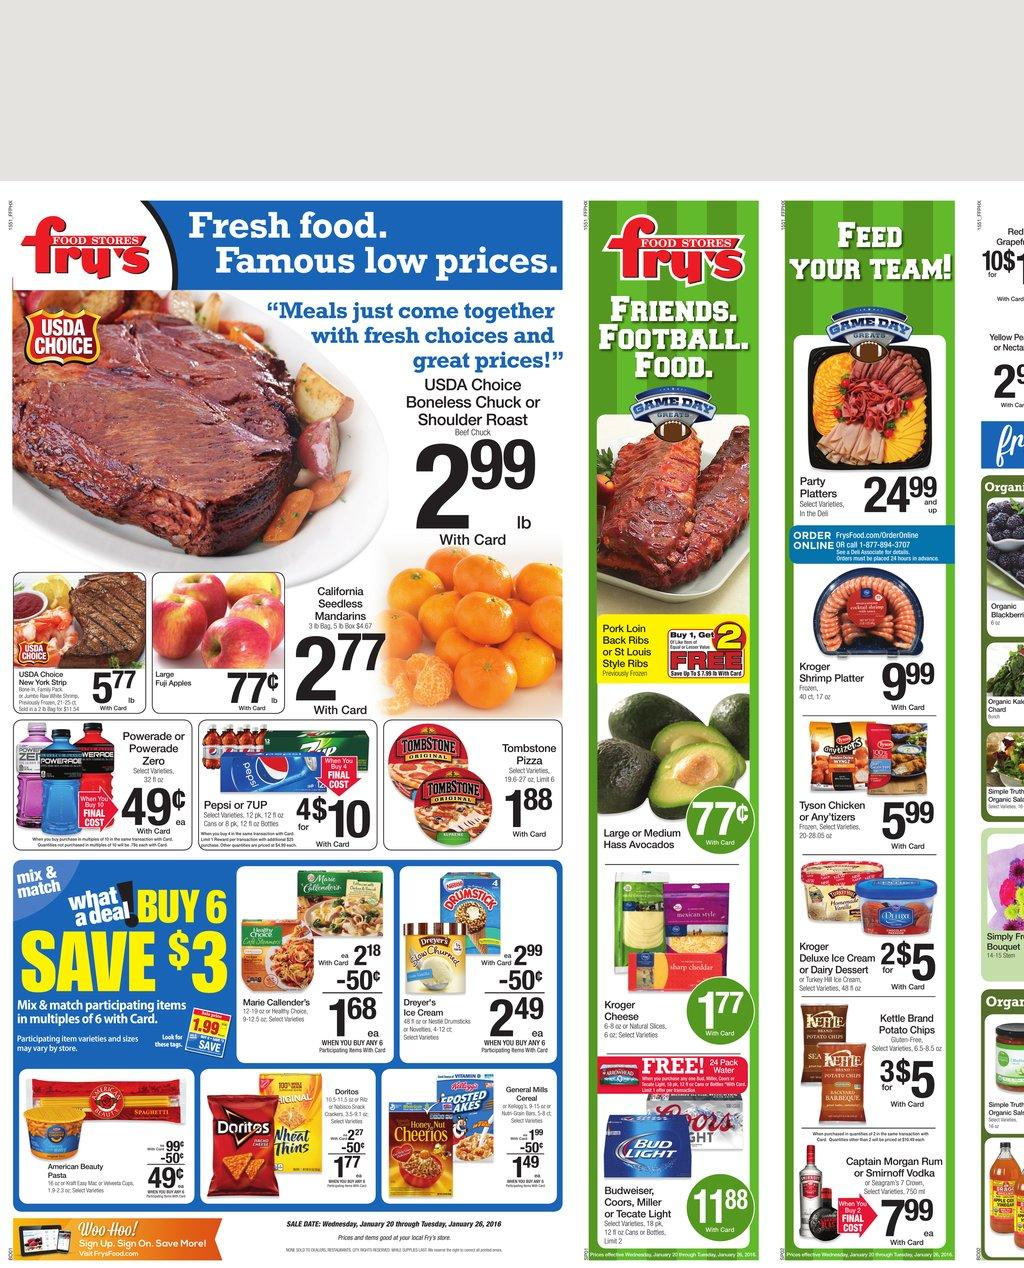 View your Weekly Ad Fry's Food Stores online. Find sales, special offers, coupons and more. Valid from Nov 28 to Dec